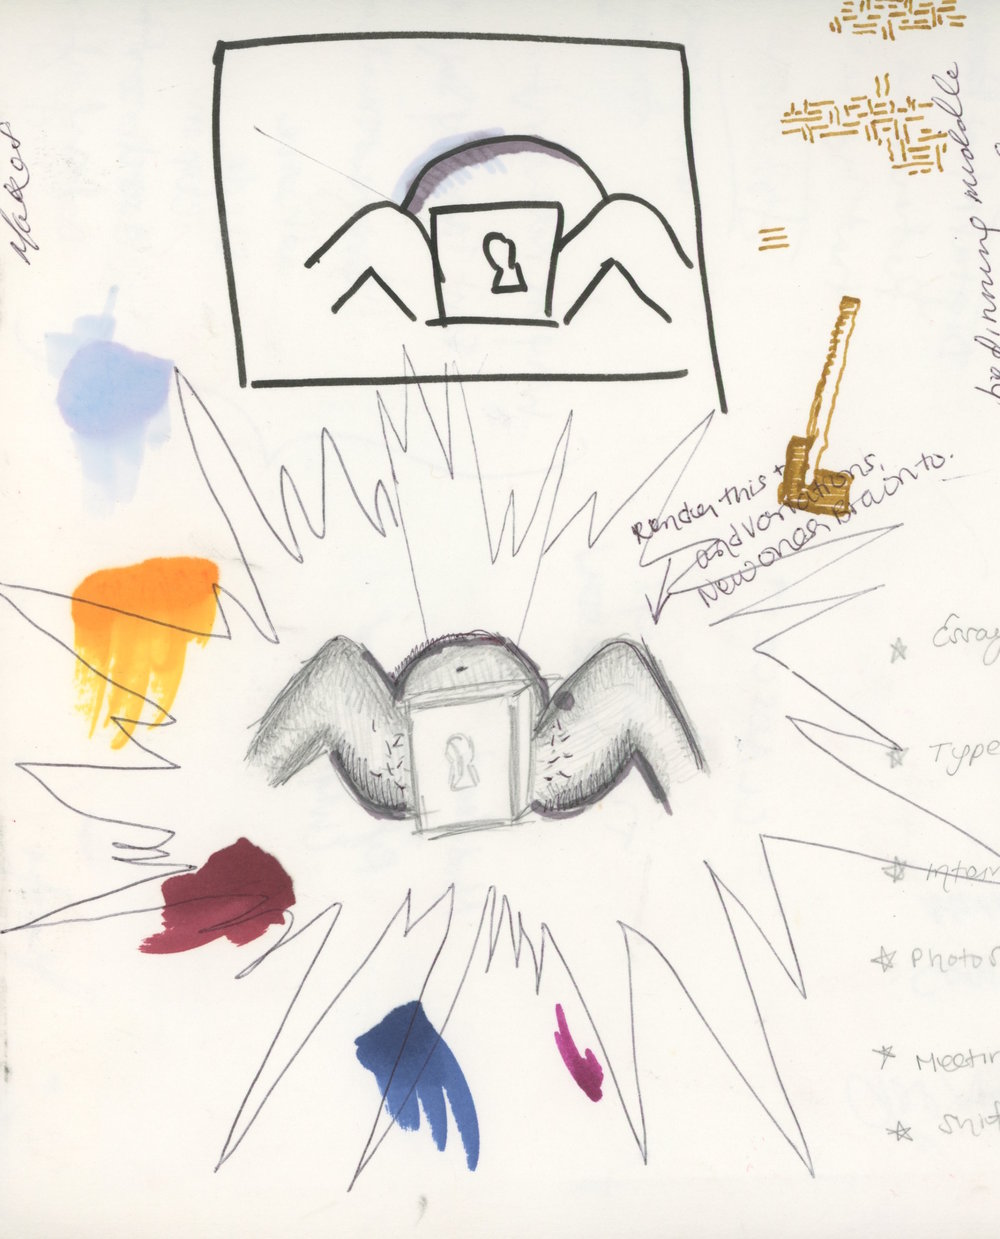 Sketches - Reproductive Rights Visual Metaphors